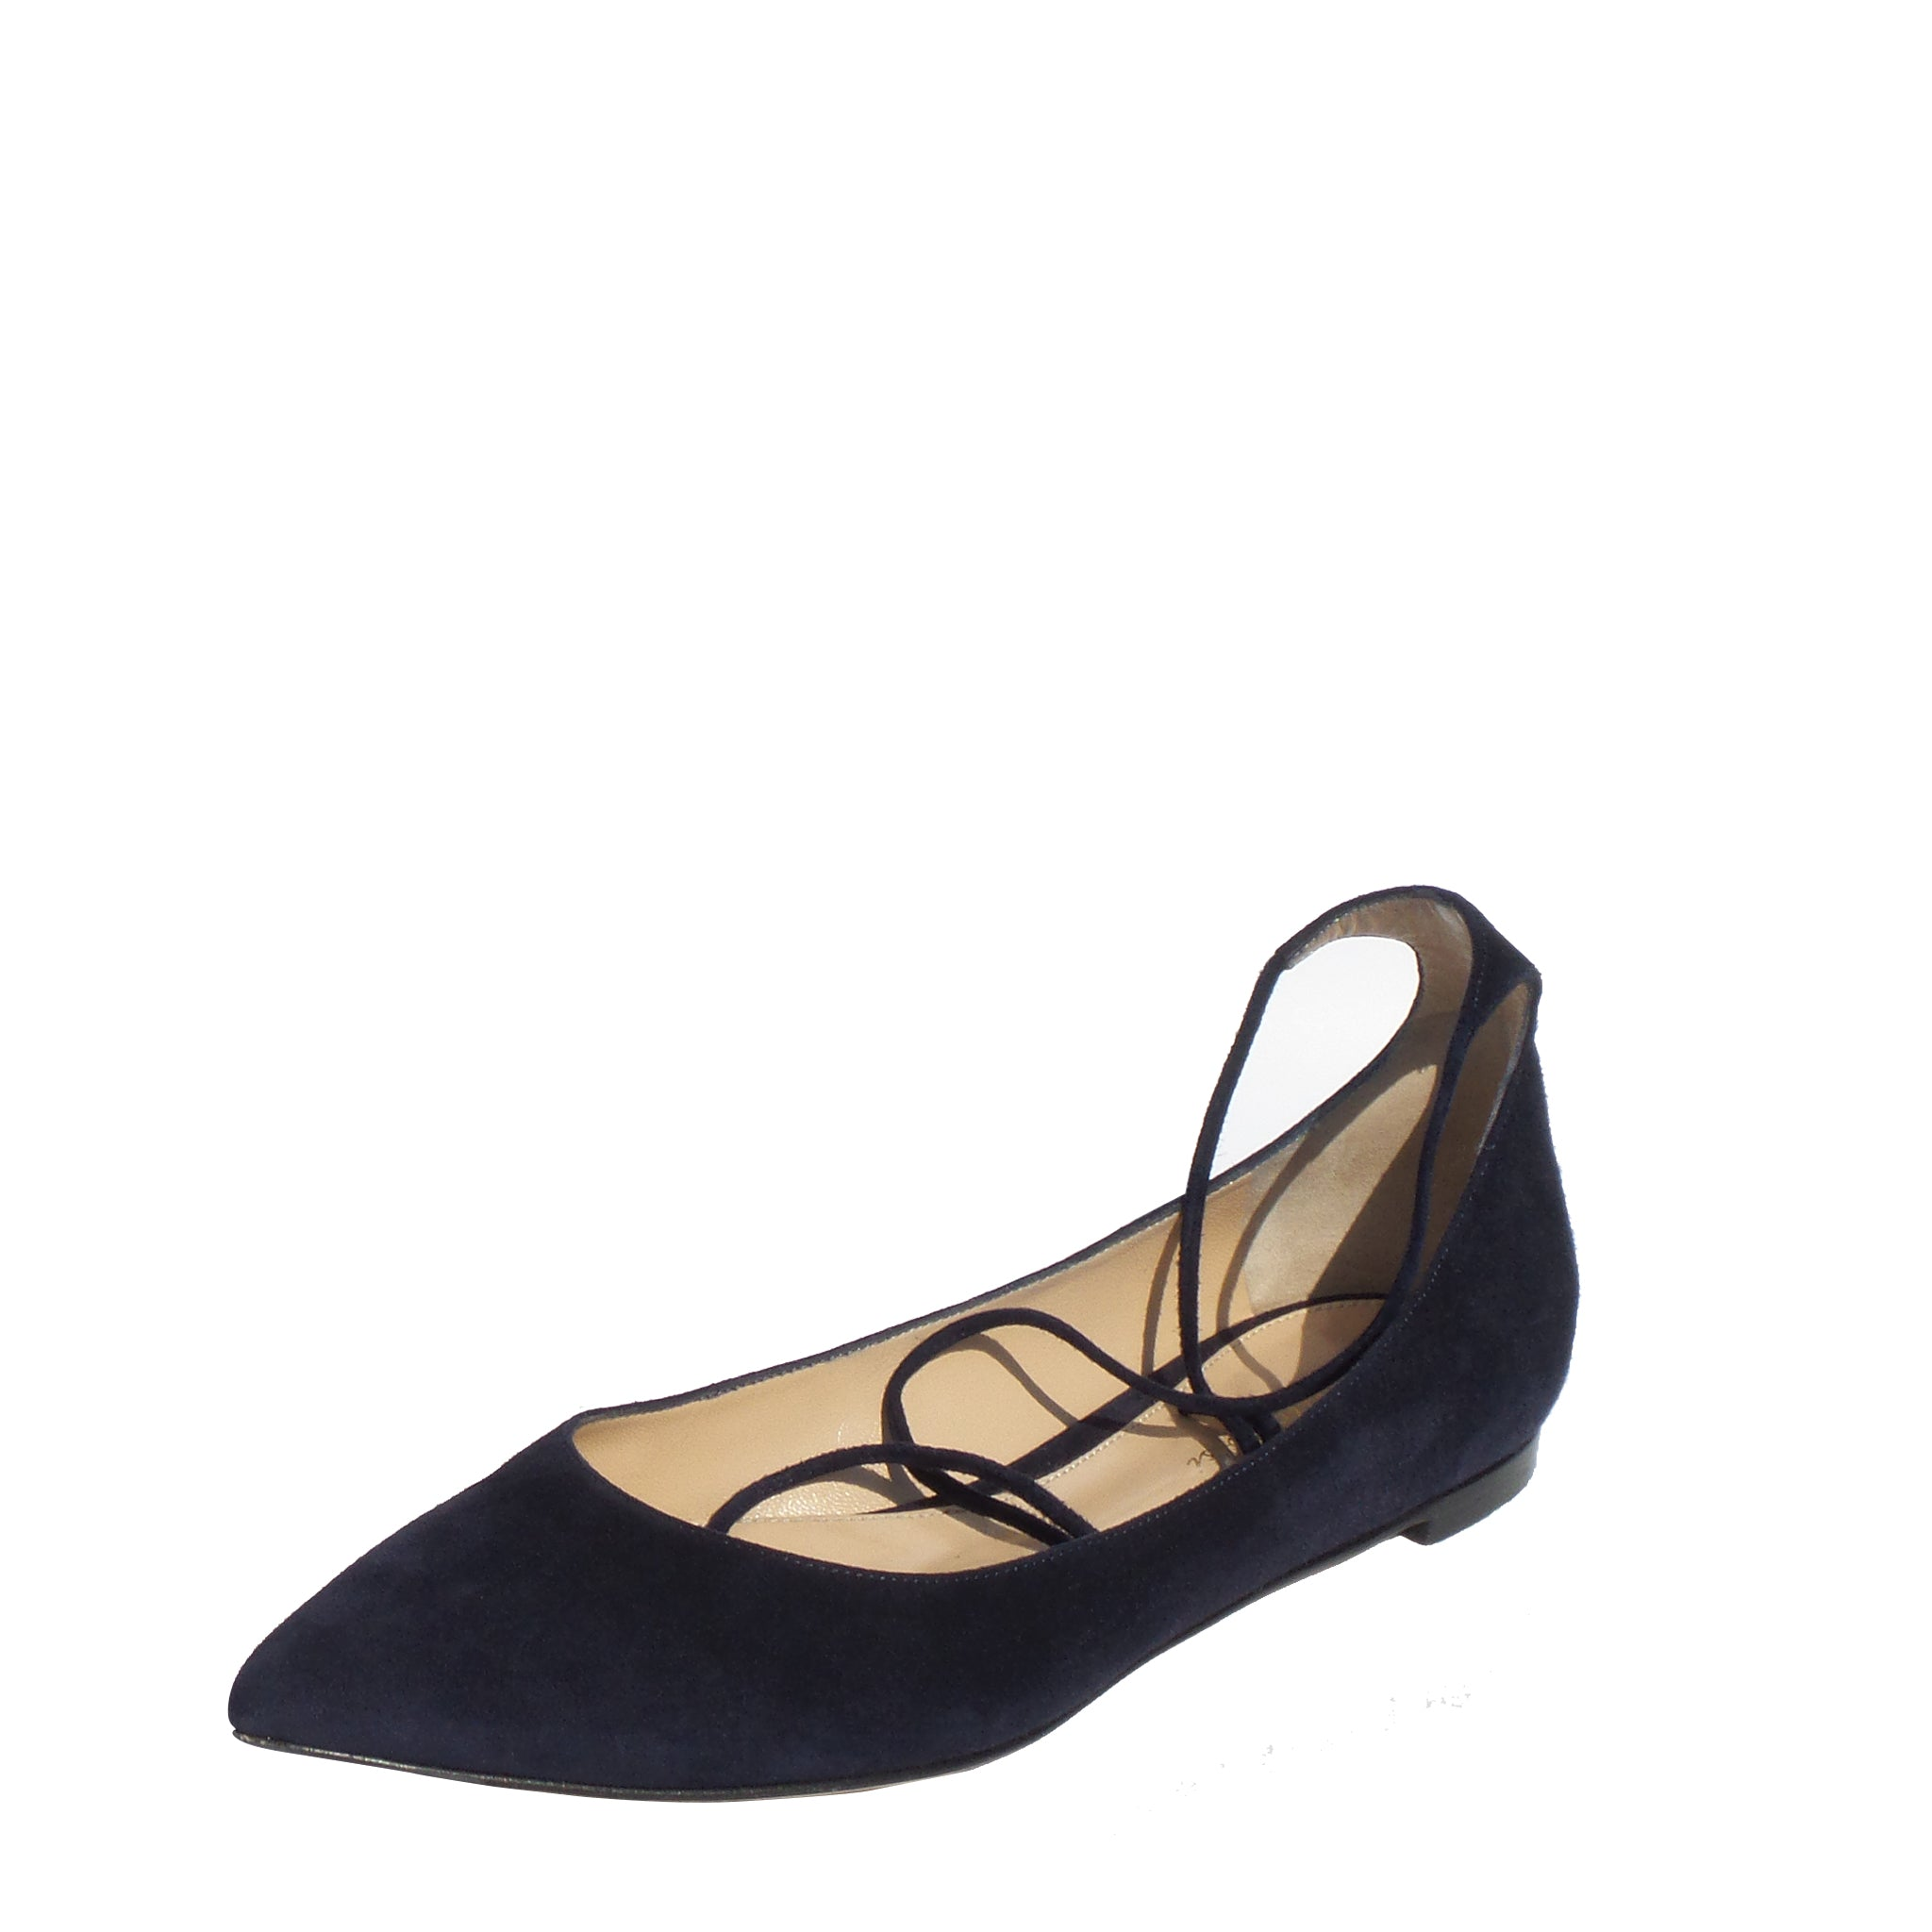 8192c87c1b7d GIANVITO ROSSI Navy Blue Suede Pointed Toe Wrap Ankle Tie Strap Ballet –  Encore Resale.com